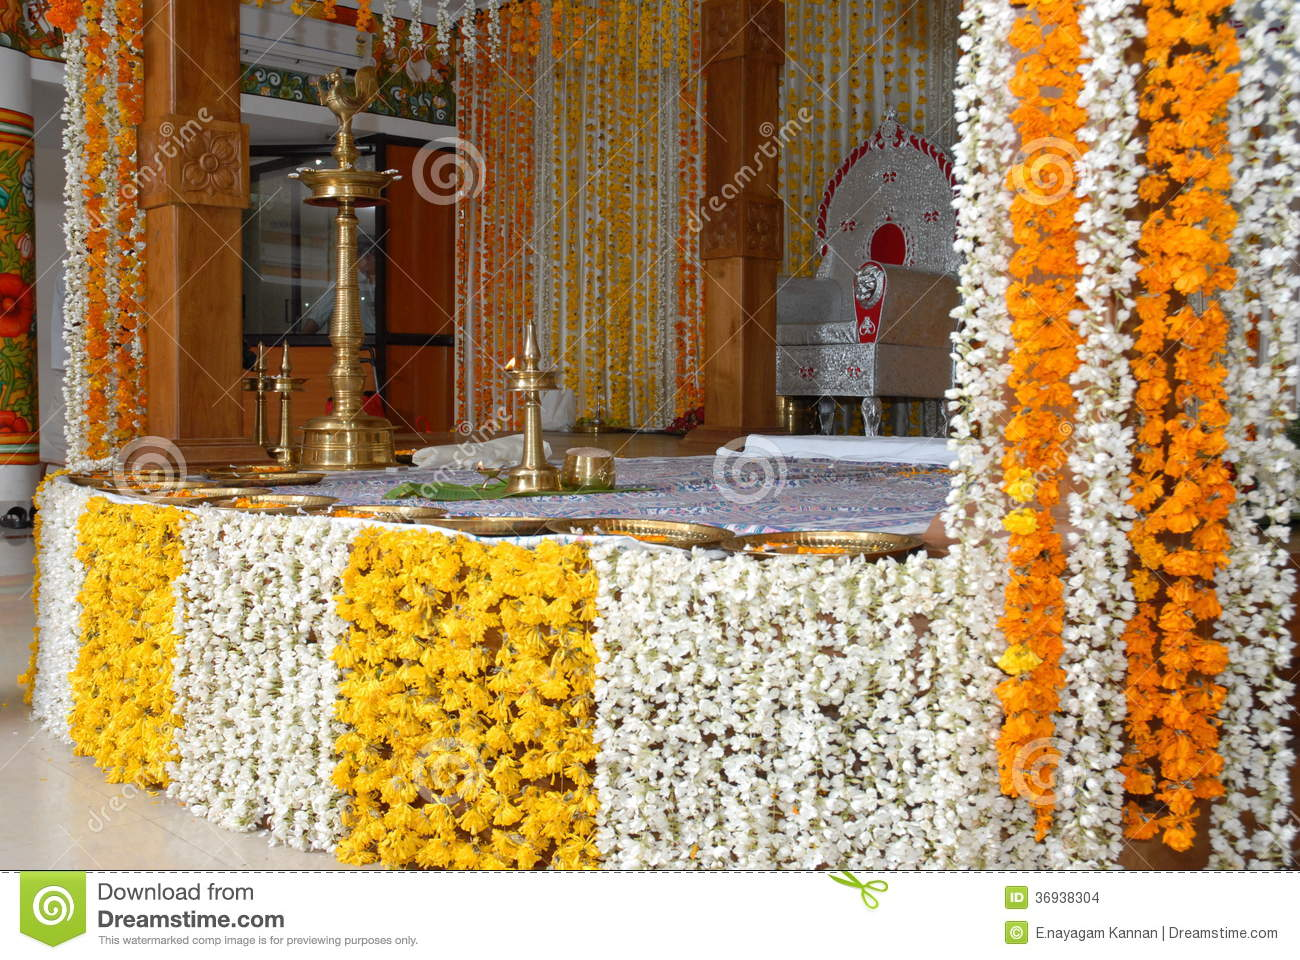 A kerala wedding flower decoration editorial stock image for Decoration images